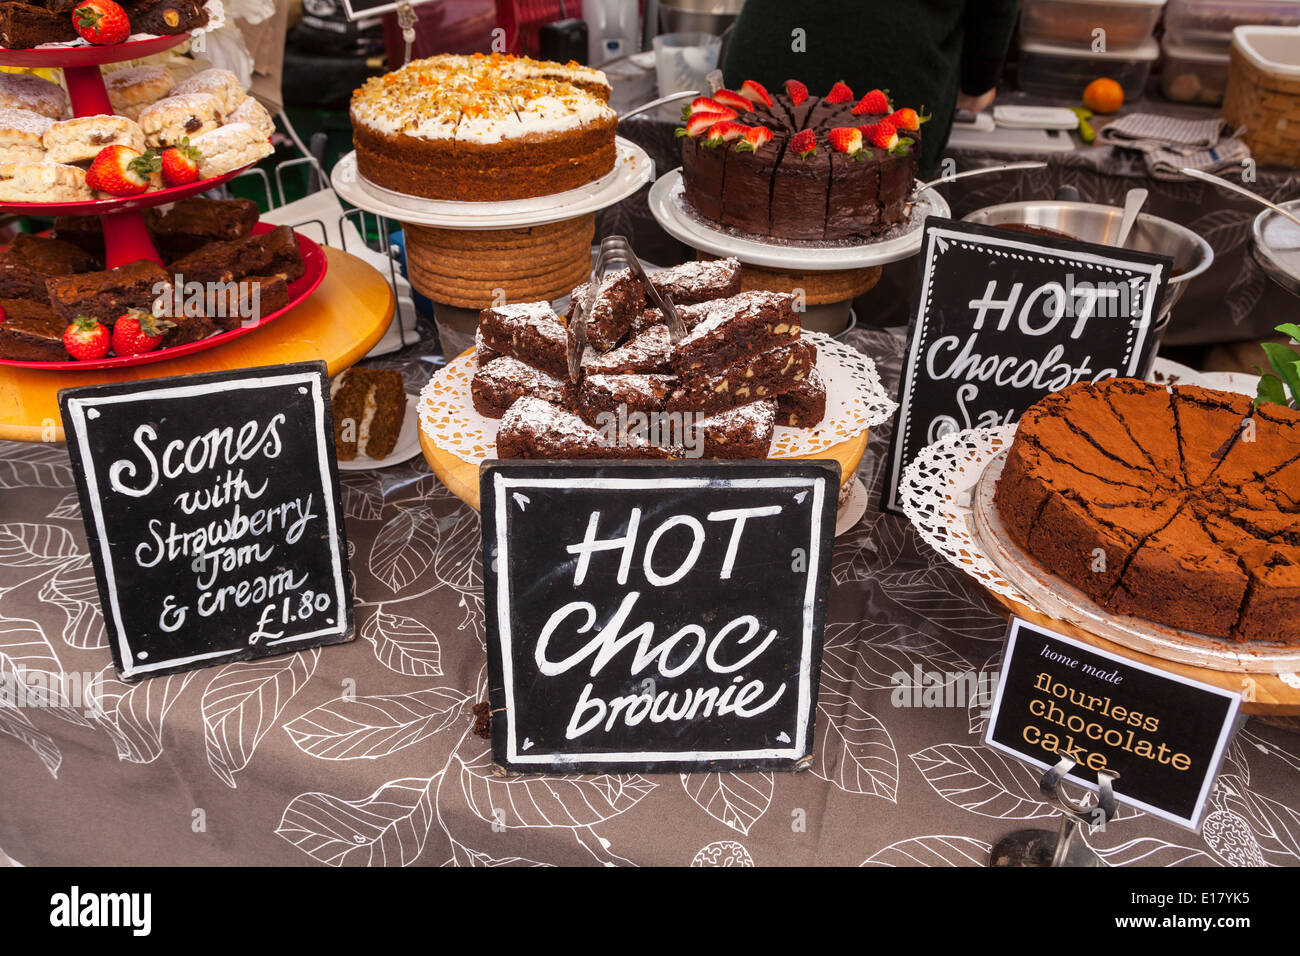 Handmade cakes for sale on a stall in Camden Market, London. Stock Photo